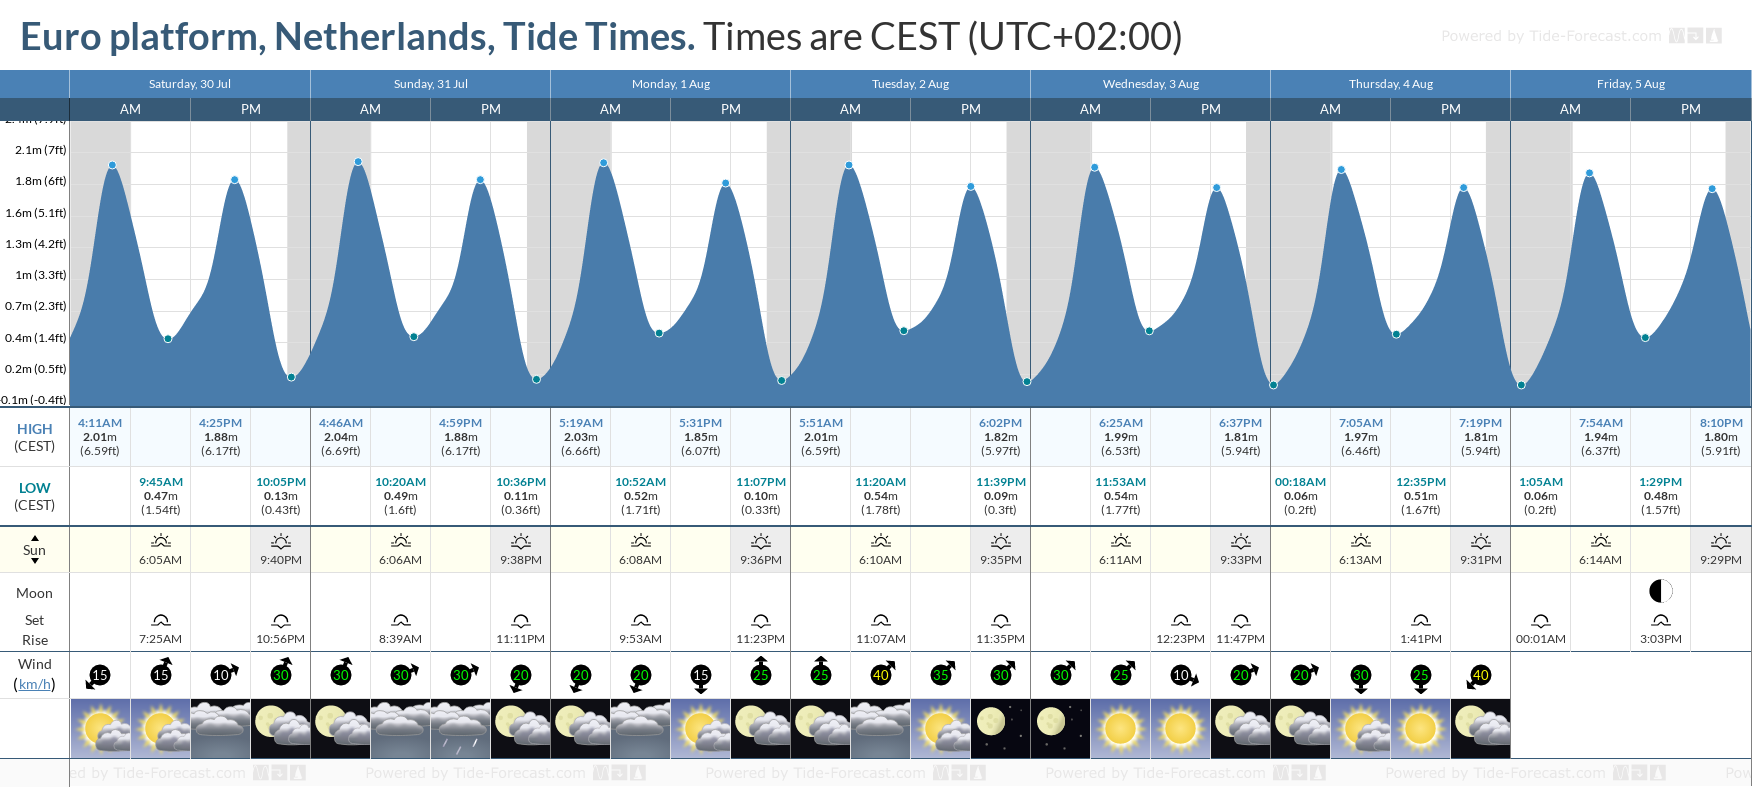 Euro platform, Netherlands Tide Chart including high and low tide tide times for the next 7 days